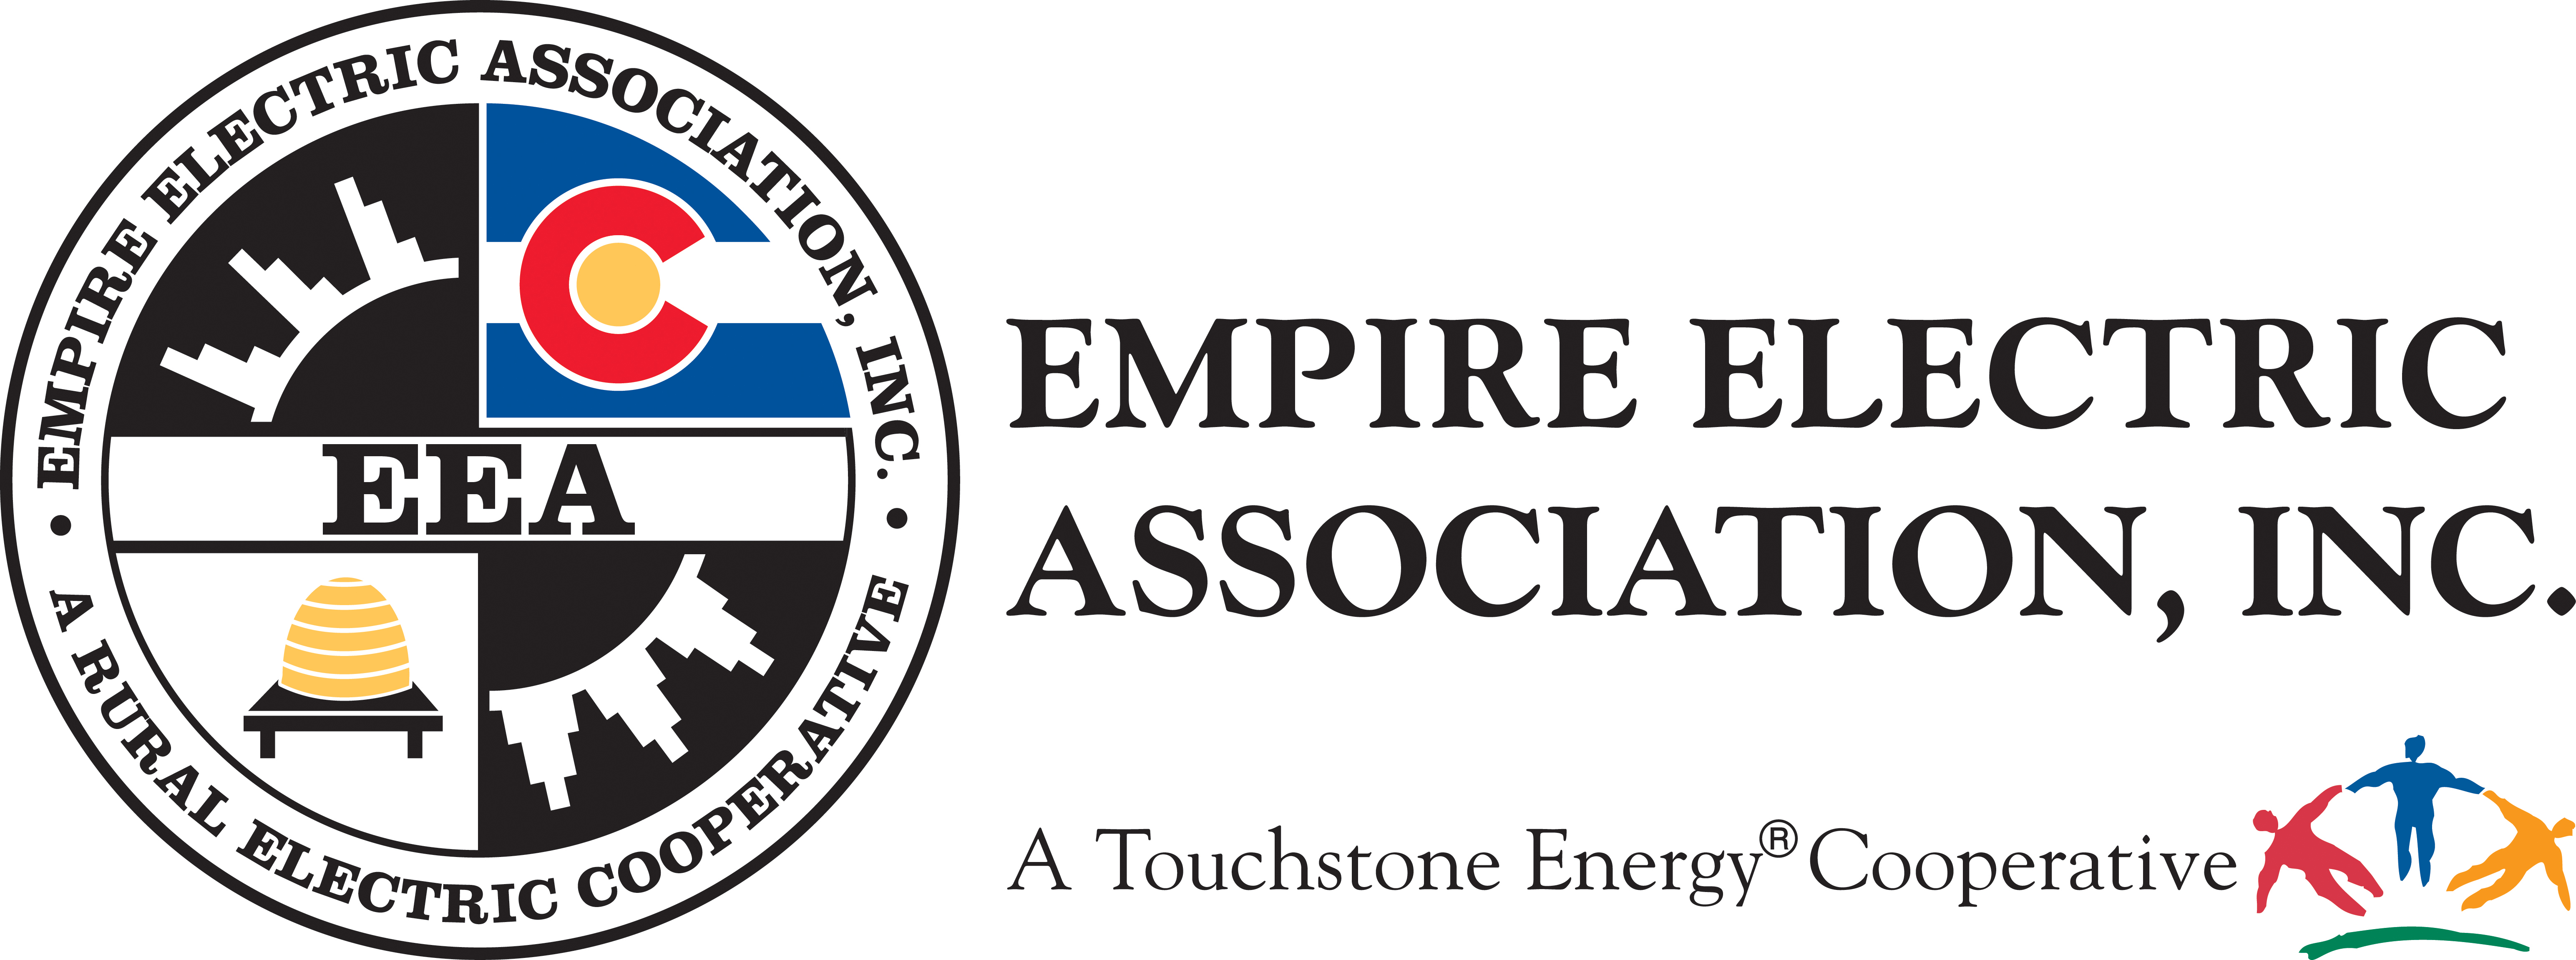 Empire Electric Association, Inc. Logo